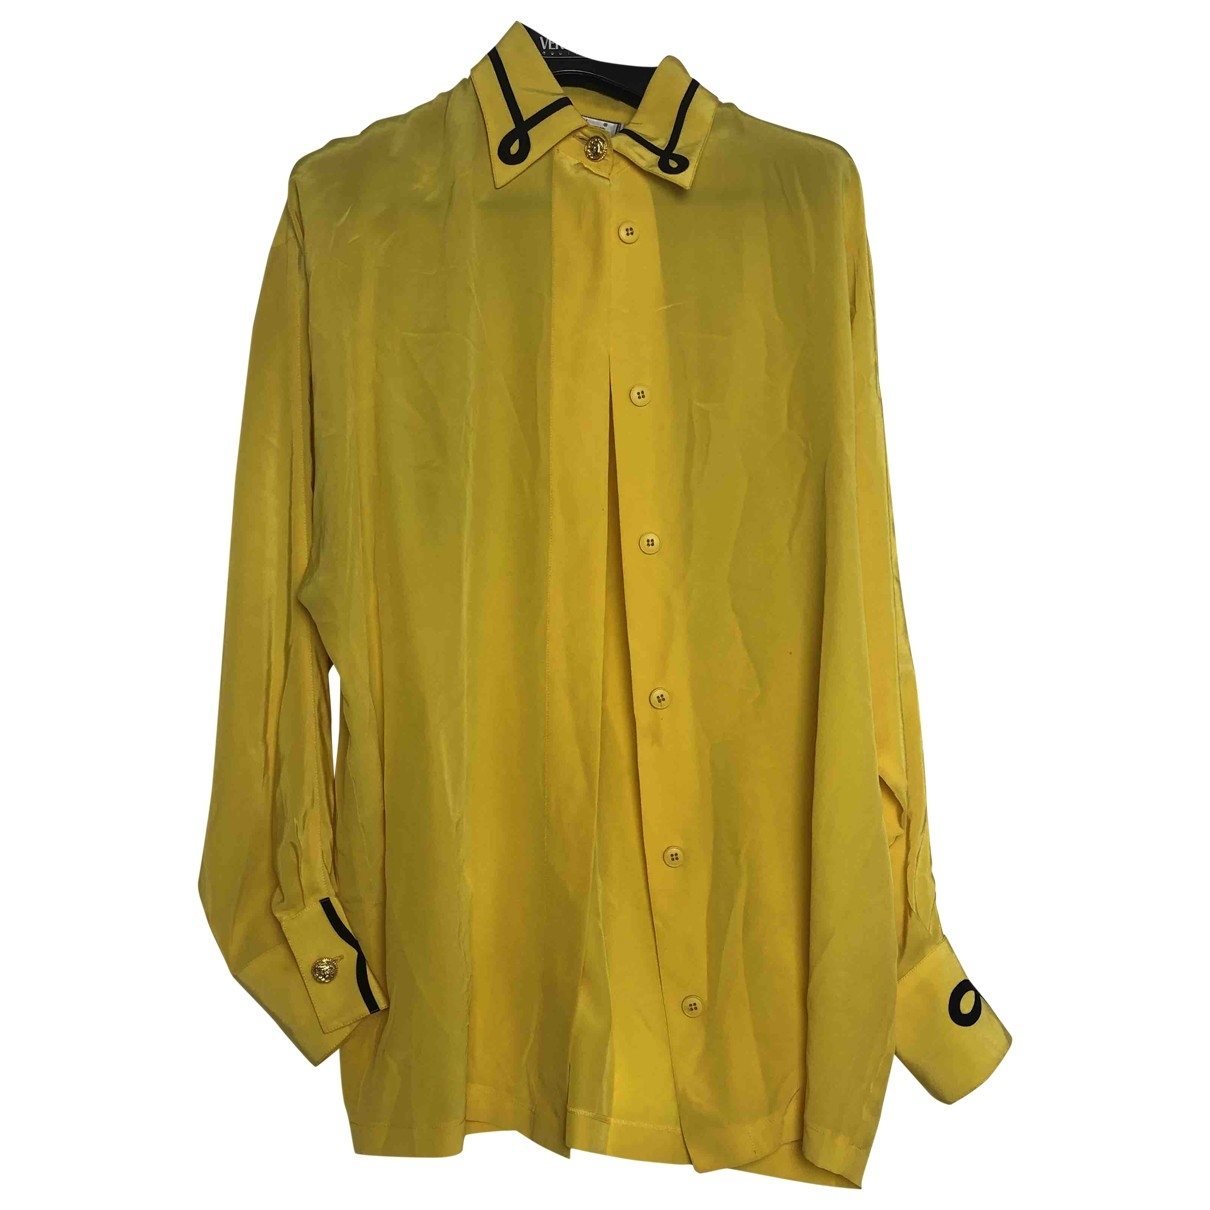 Gianni Versace \N Yellow  top for Women 40 IT